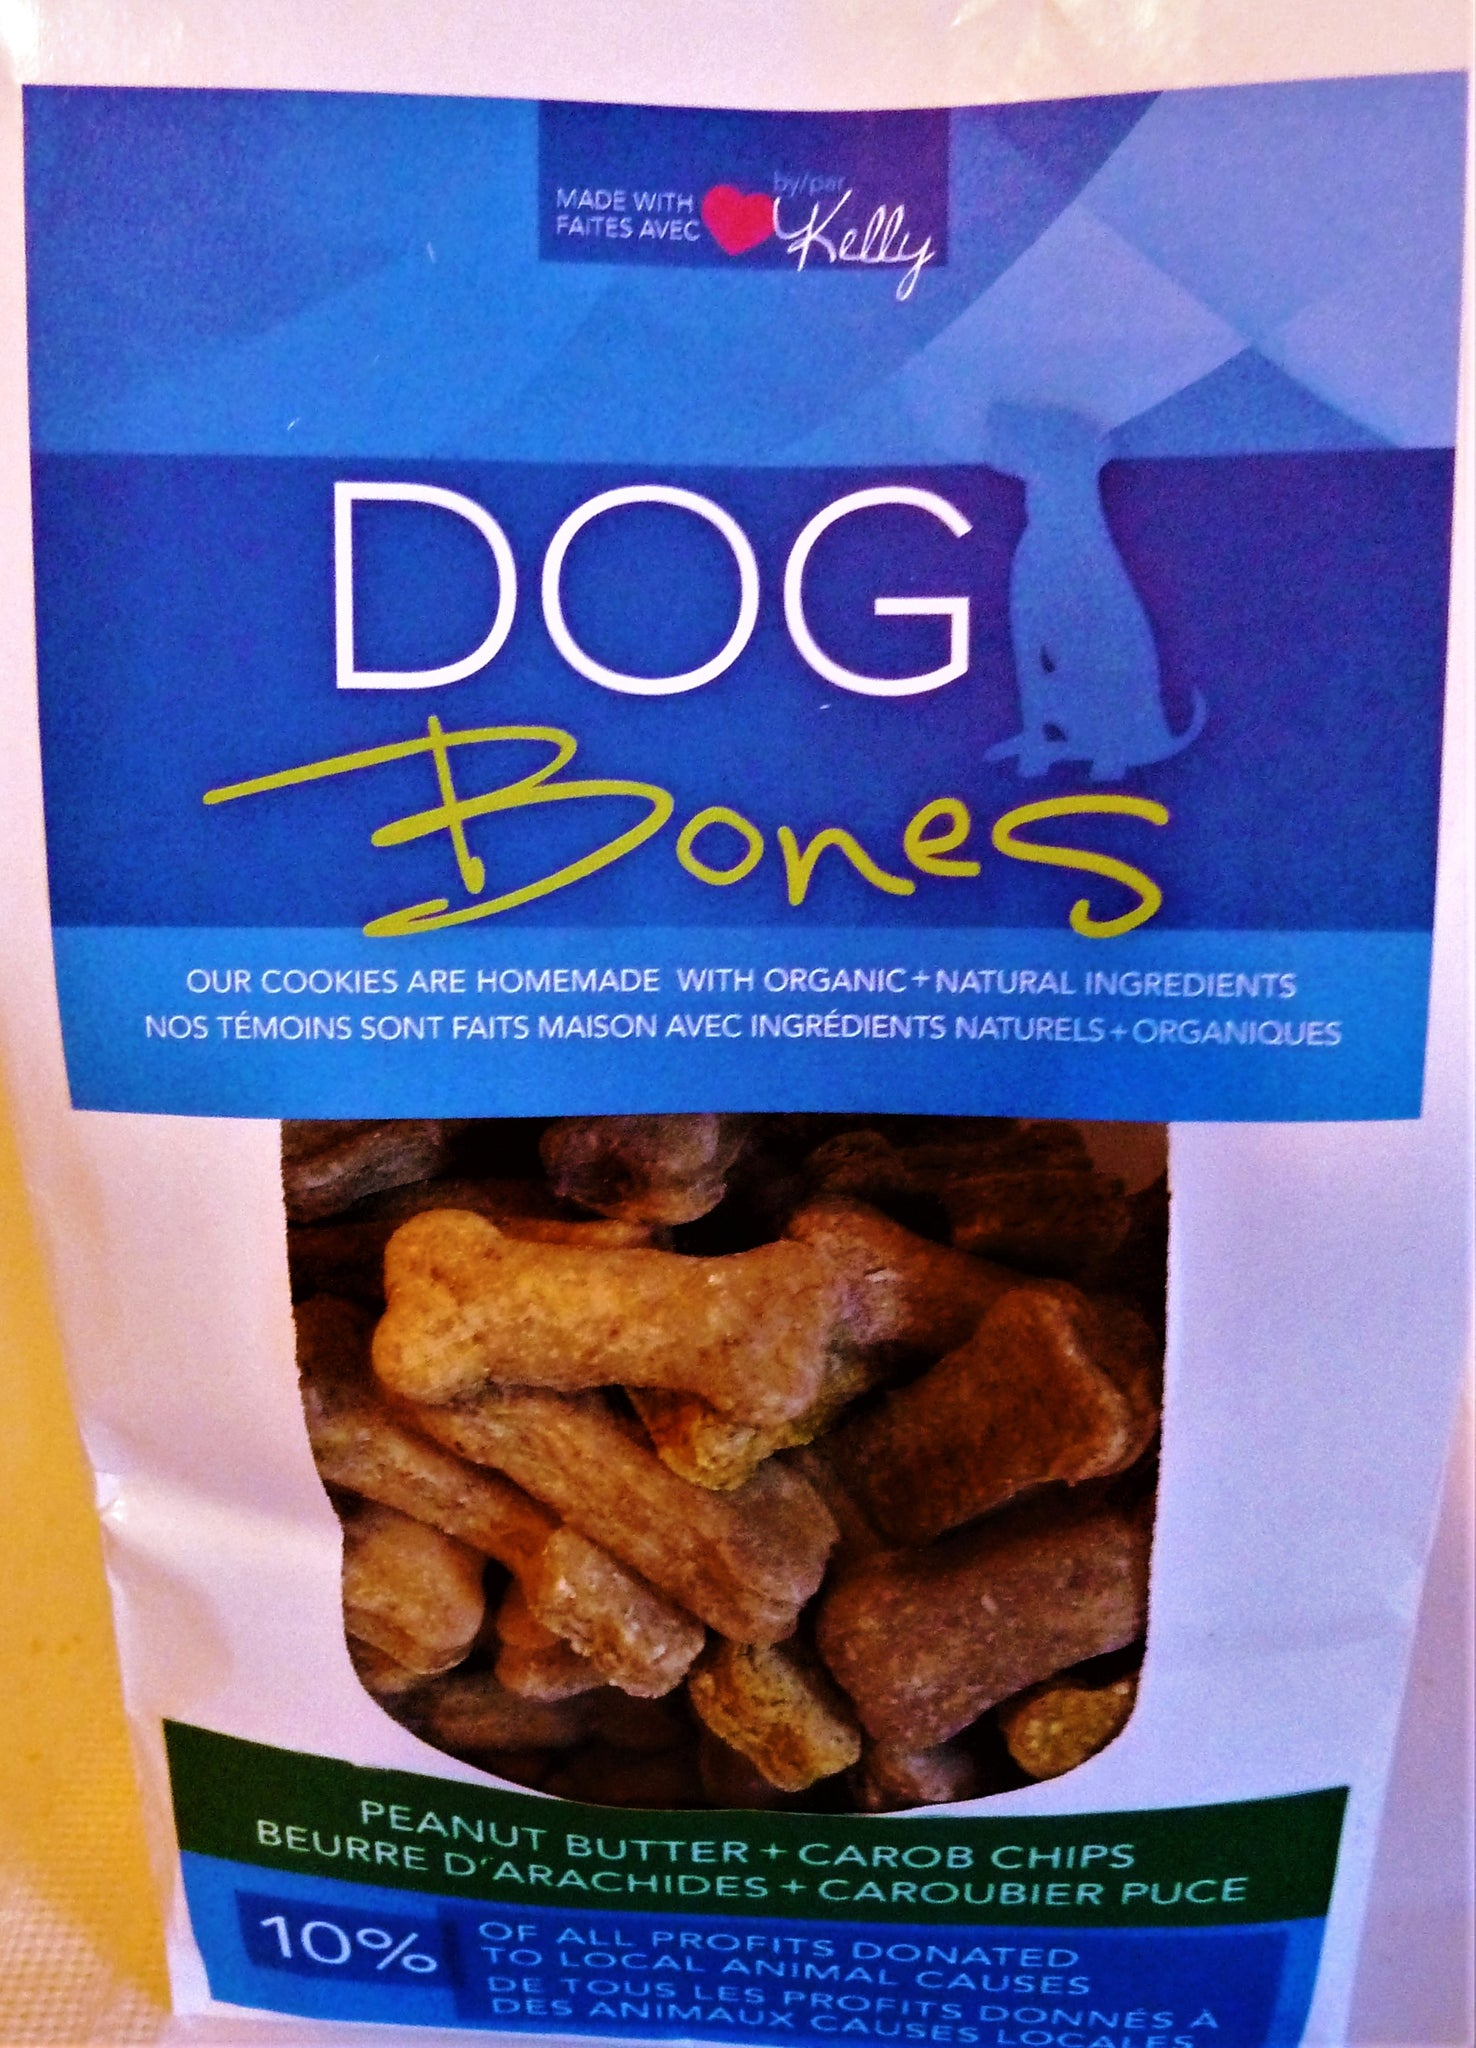 PEANUT BUTTER & CAROB CHIPS - DOG BONES COOKIES